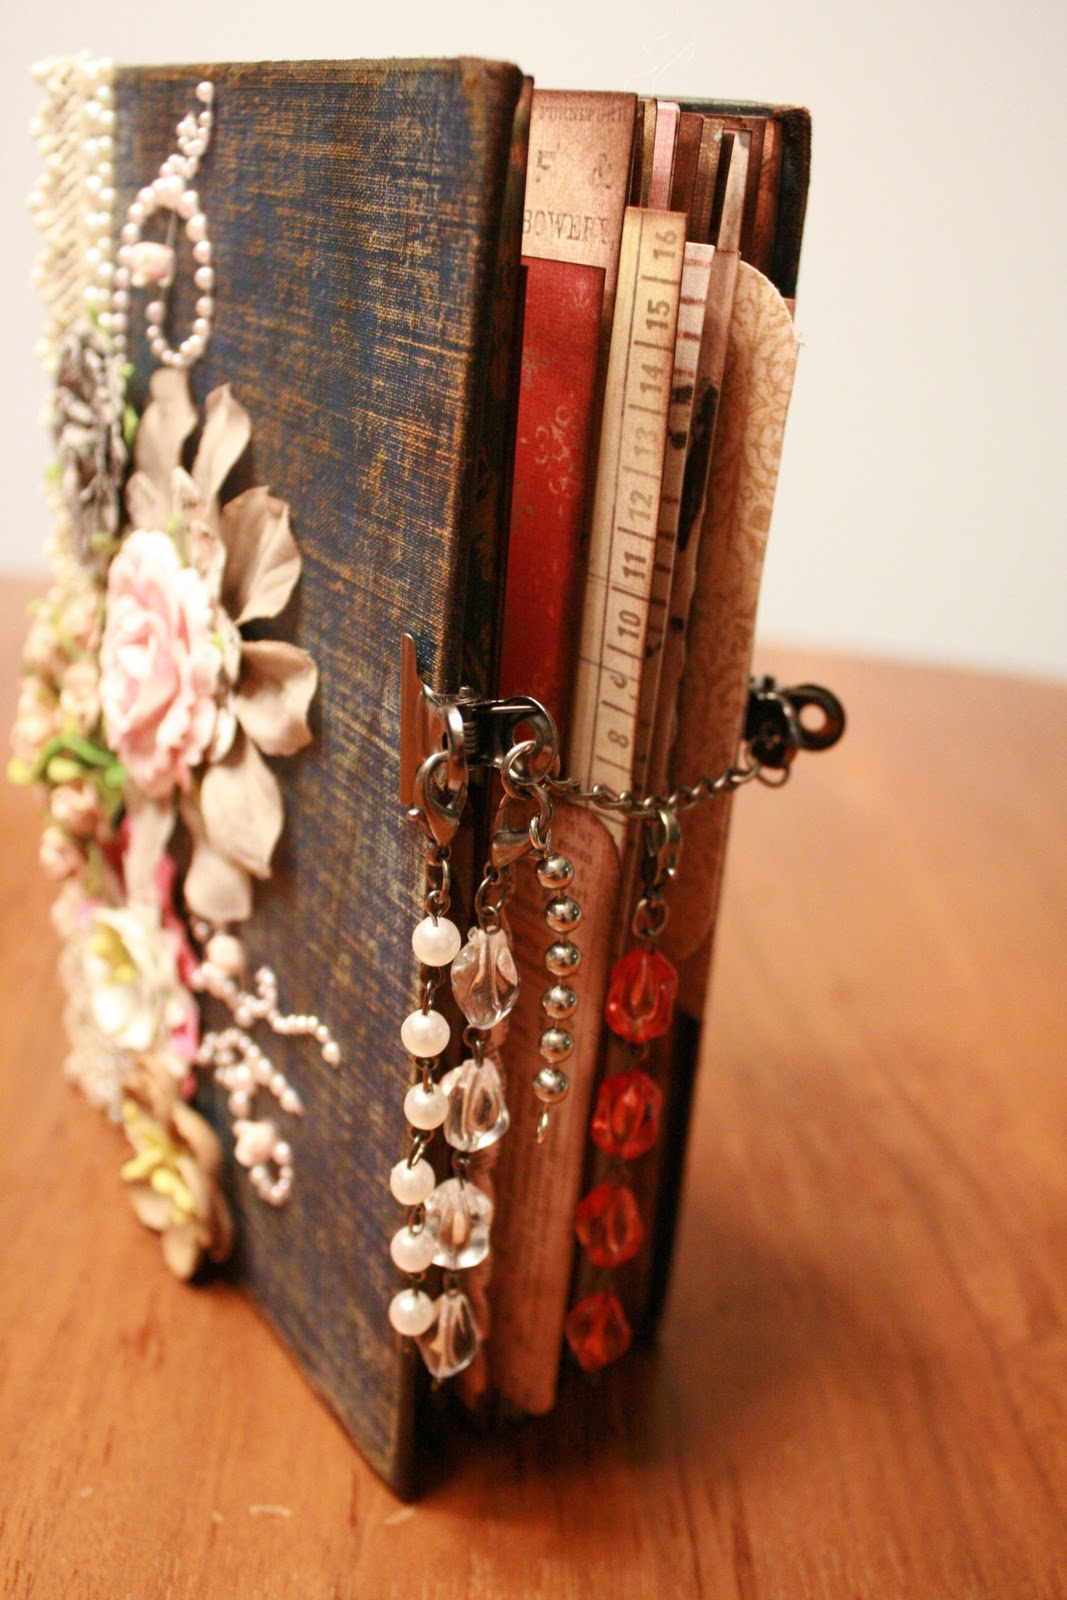 A Creative Operation: Altered Books